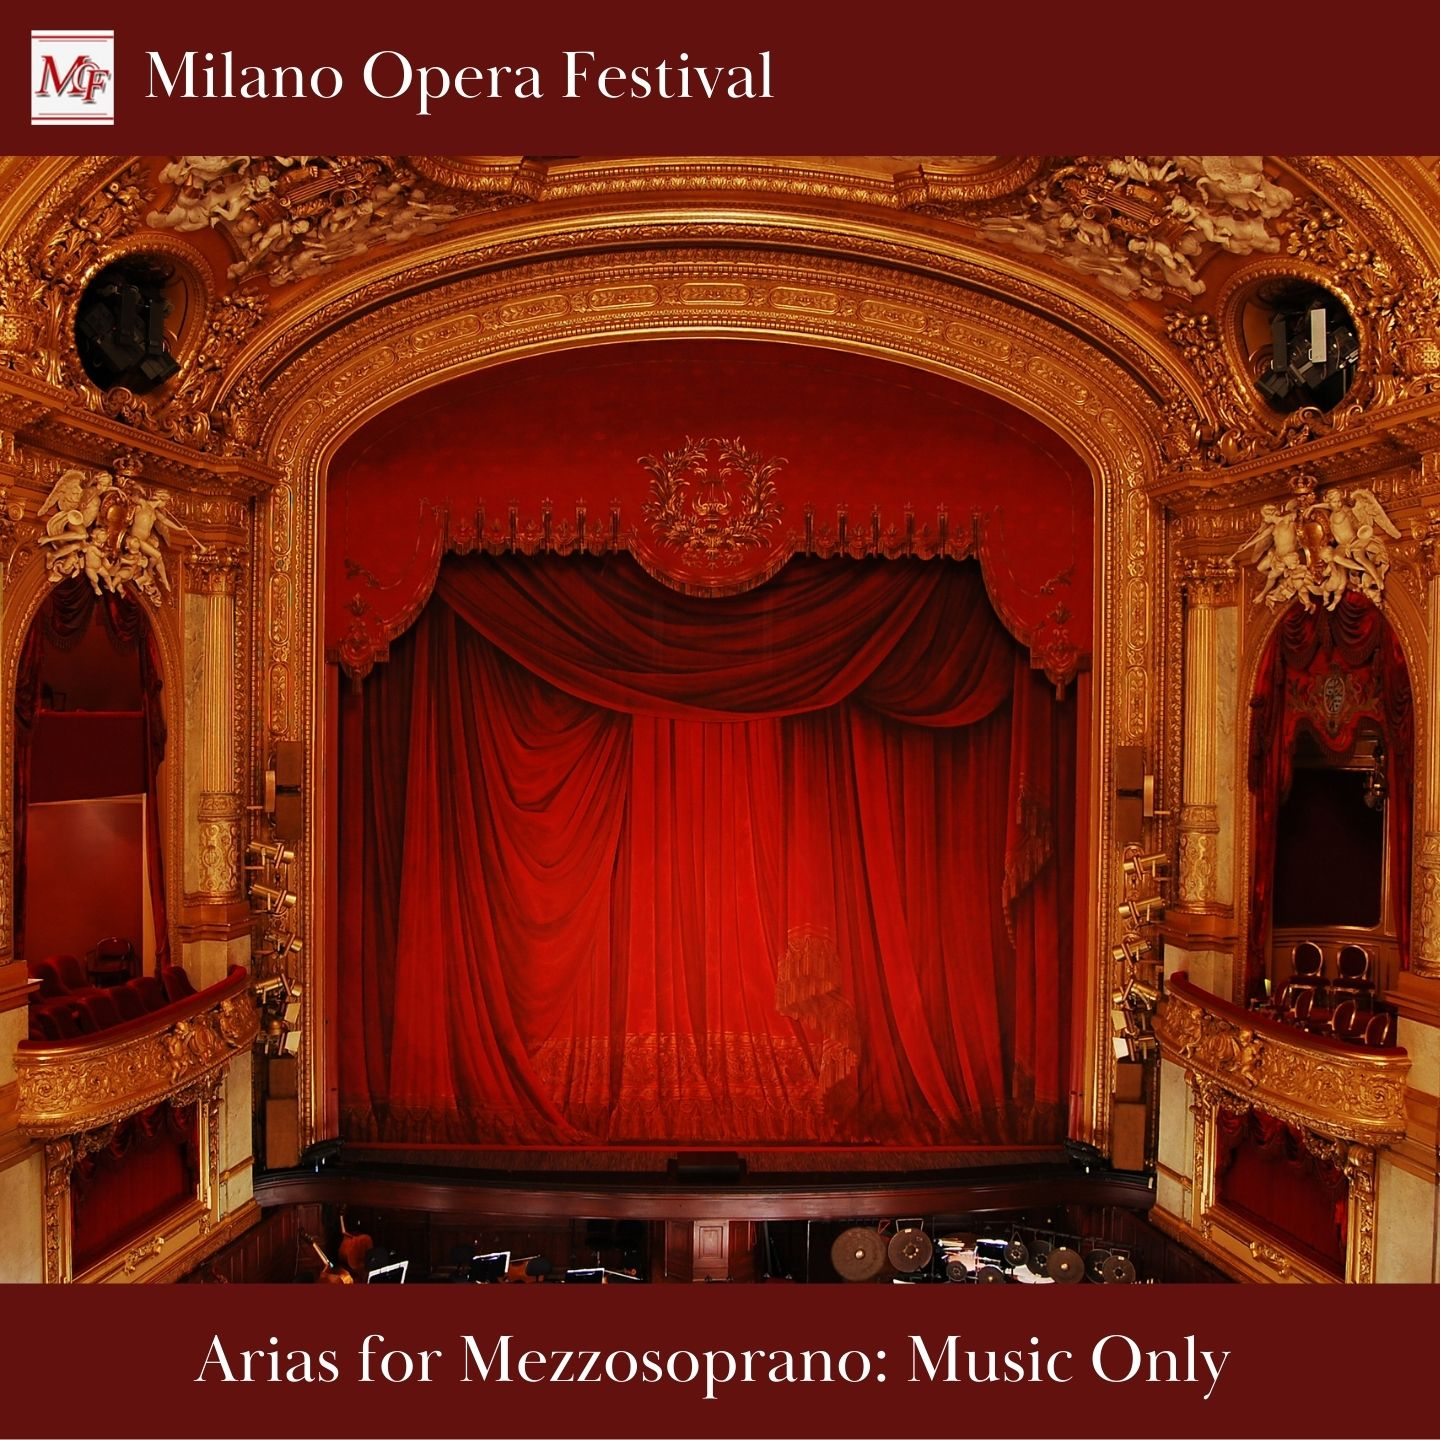 Arias for Mezzosoprano - Only Music + Video Karaoke Tutorial